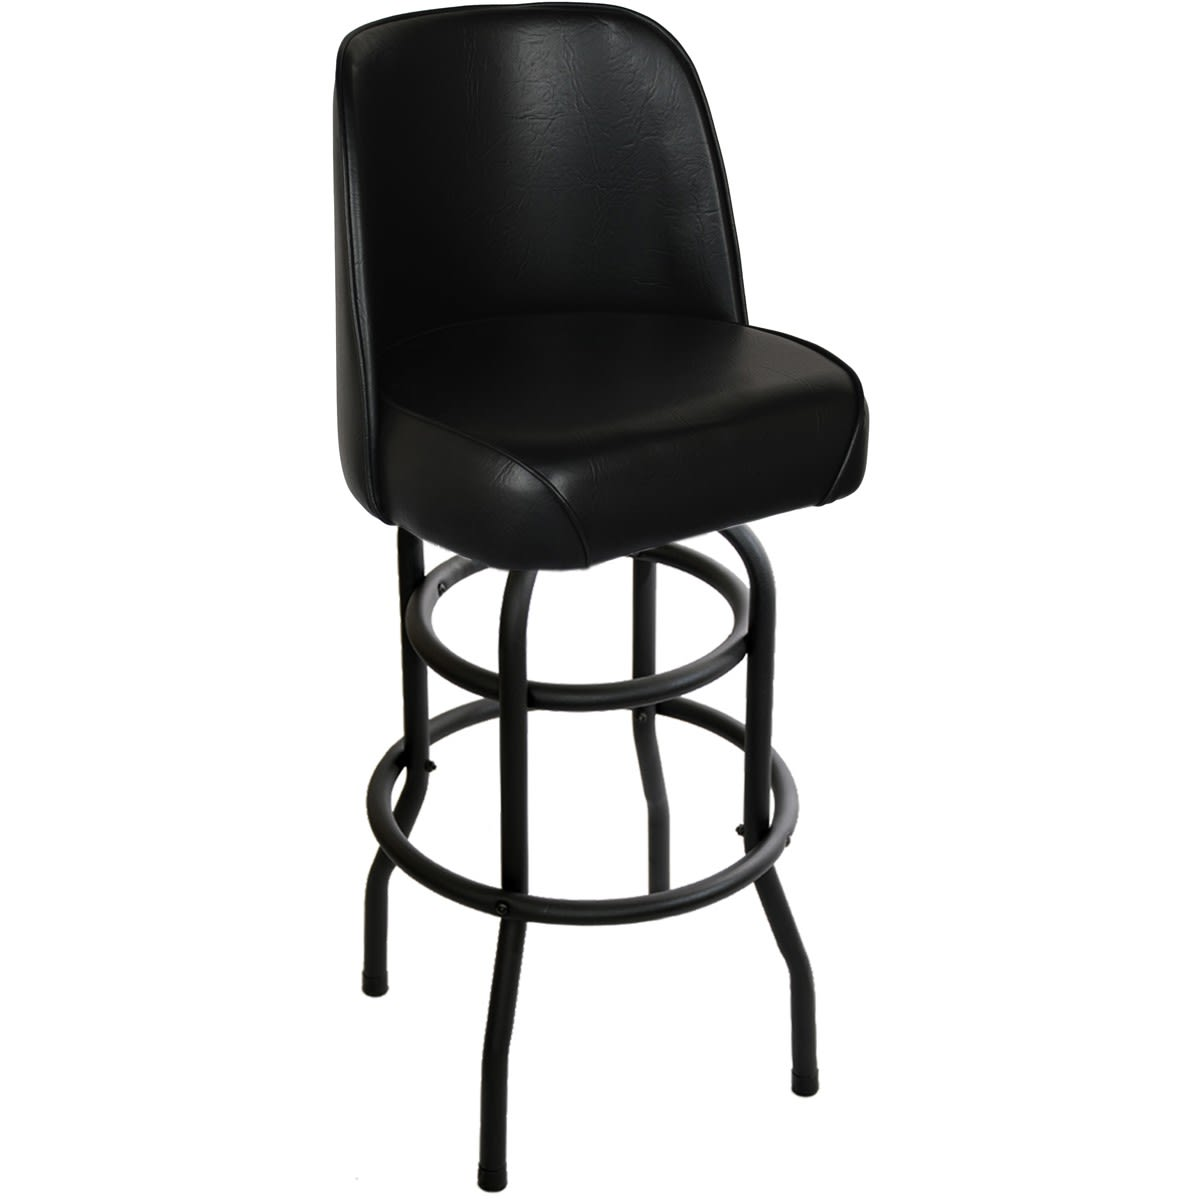 Swivel with a Black Double Ring Frame & Bucket Seat